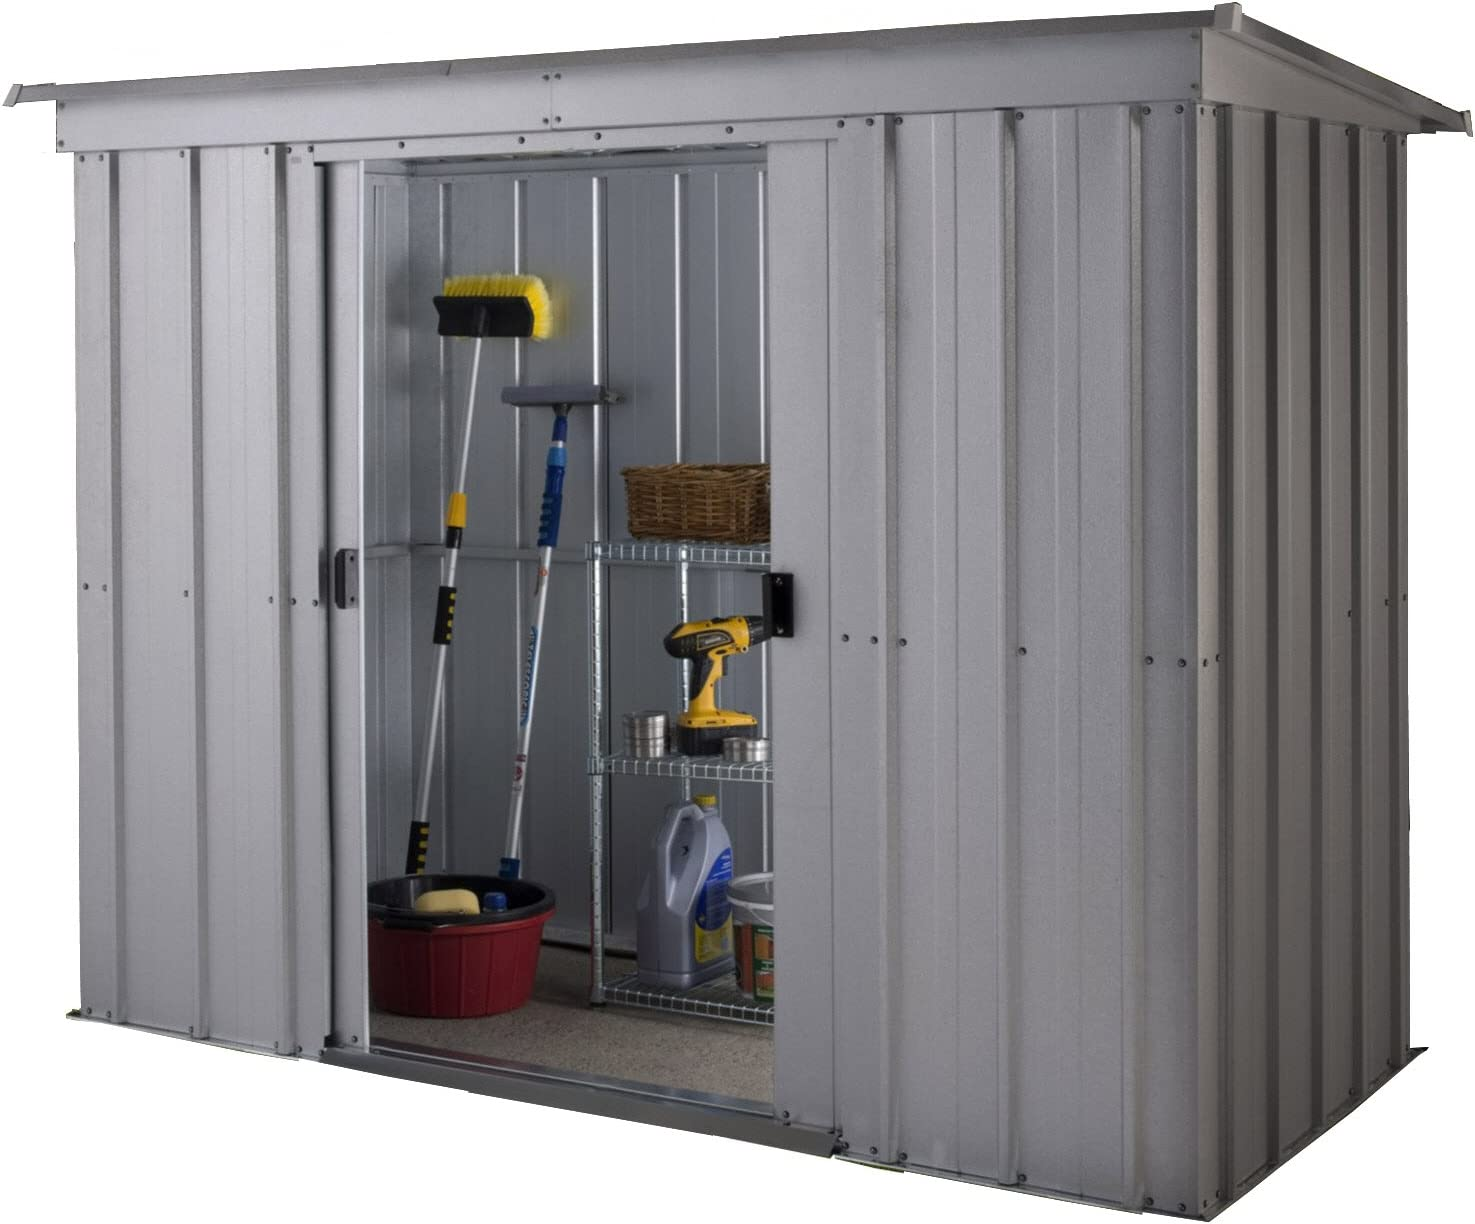 Yardmaster 6 x 4 ft Store-All Pent Roofed Metal Shed Silver